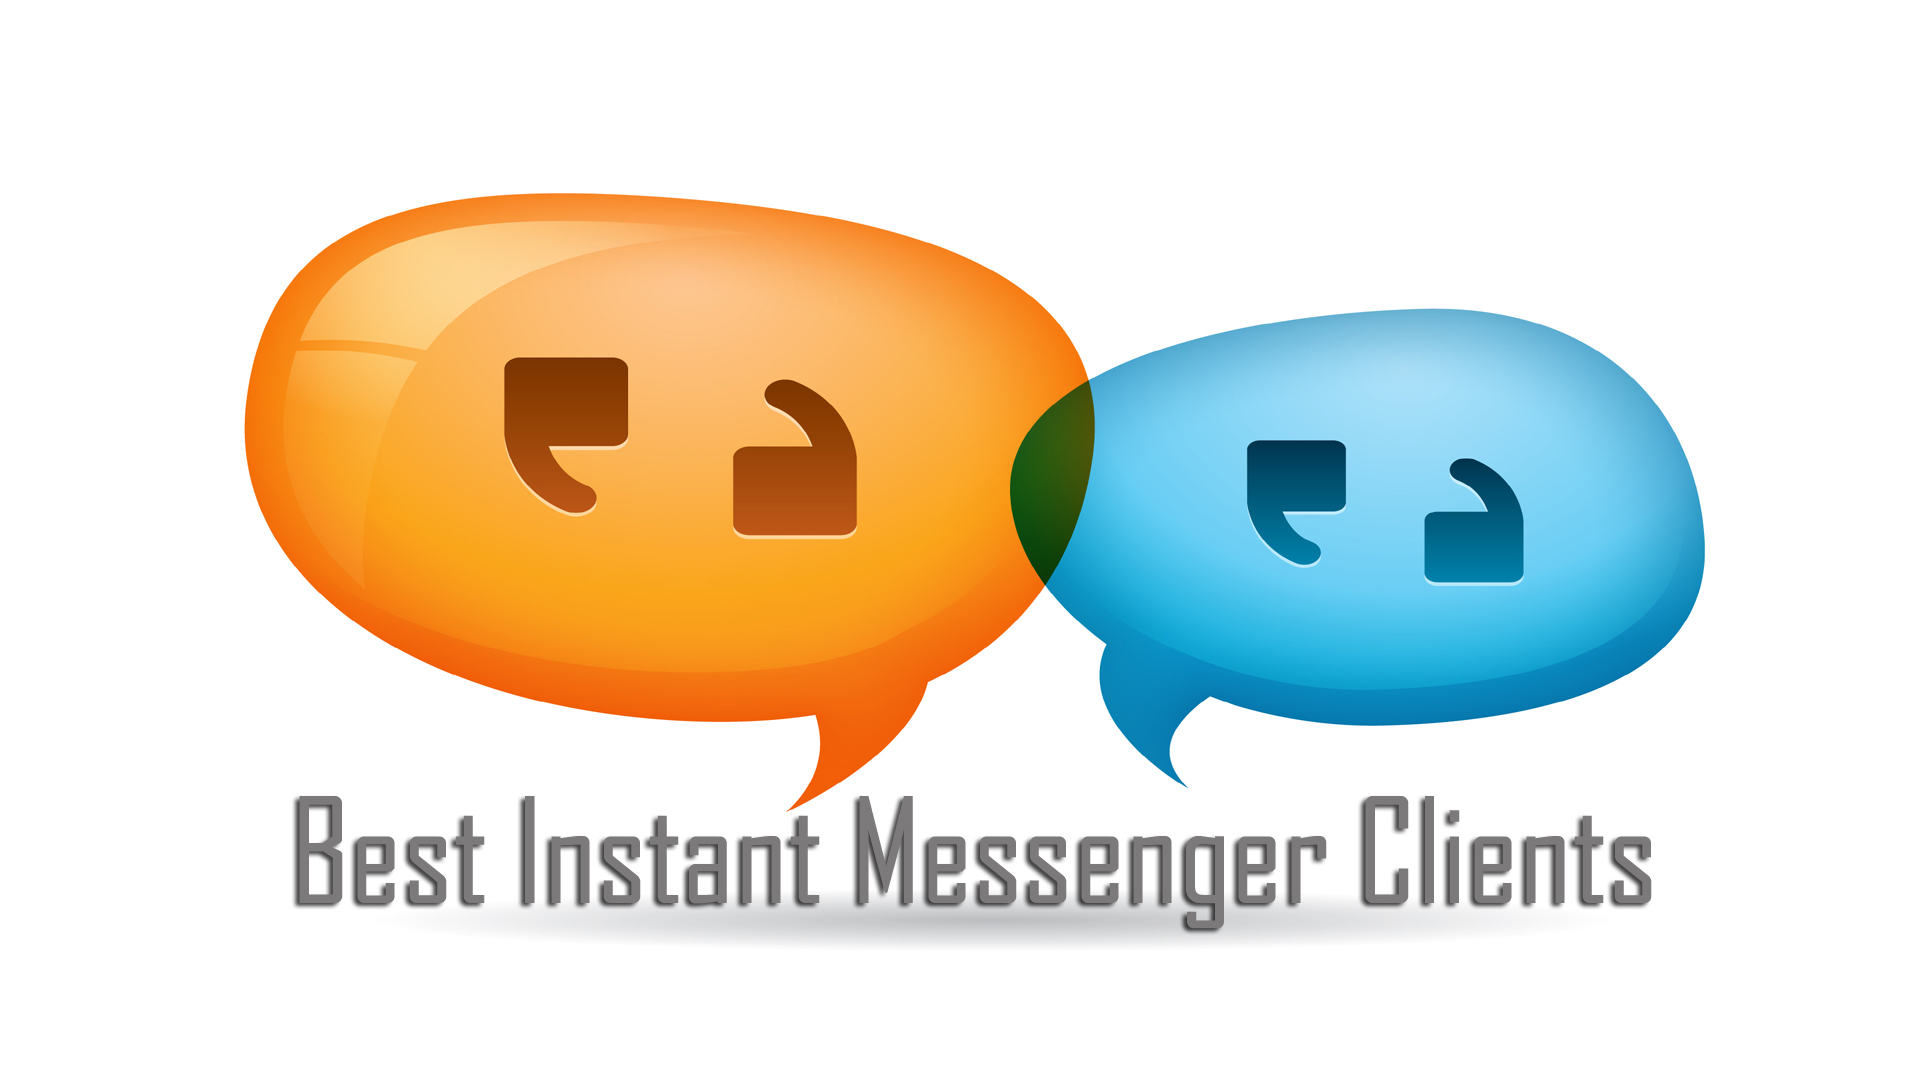 Best Instant Messenger Clients